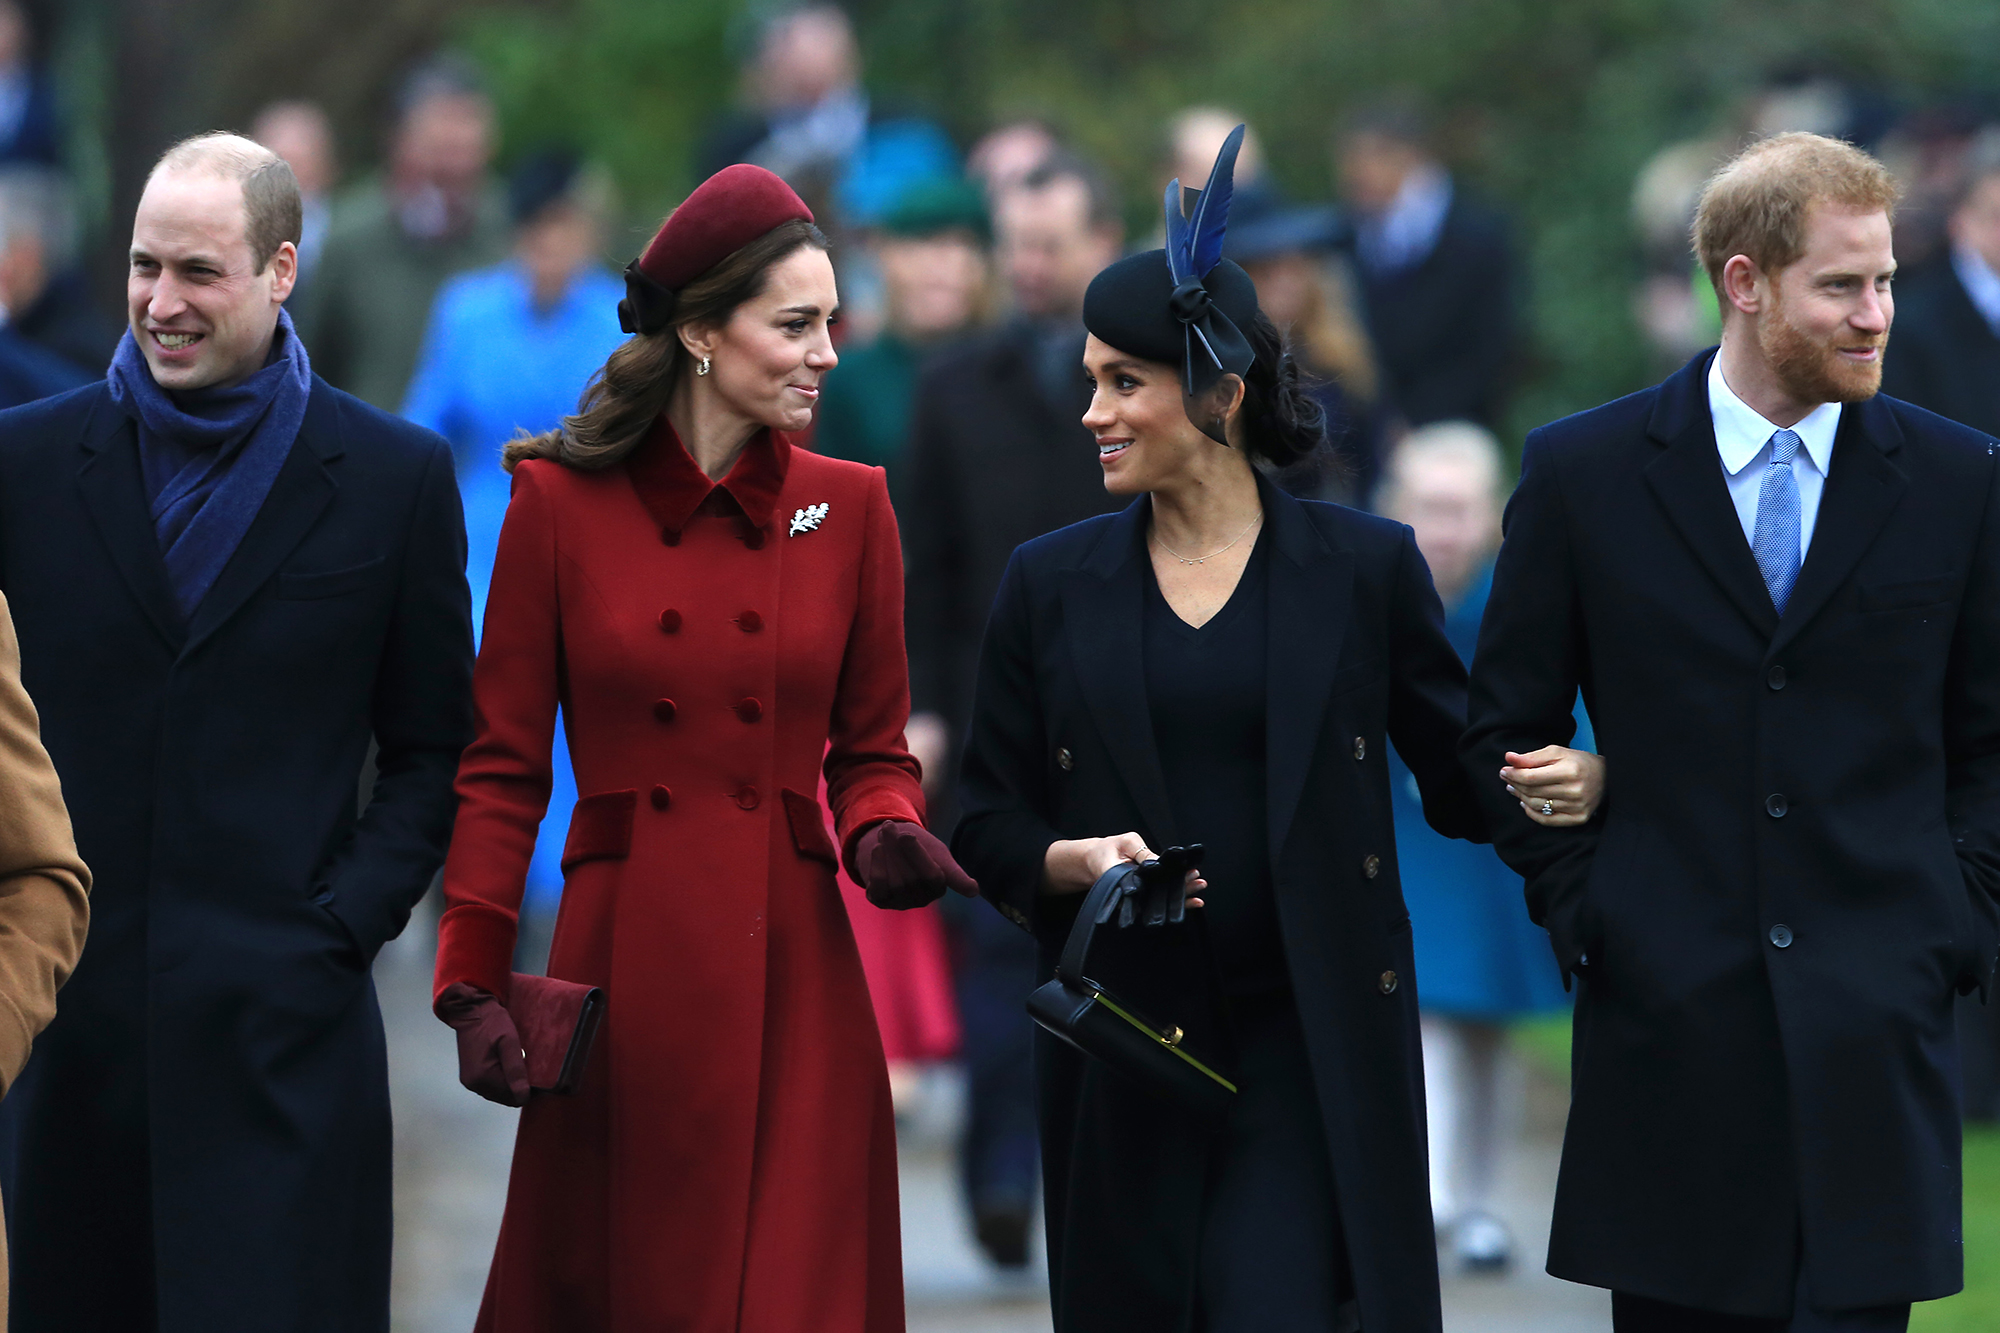 Prince Harry and Duchess Meghan's 1st Year of Marriage - After news broke that Harry and Meghan were set to move, reports surfaced that the twosome were feuding with Prince William and Duchess Kate, who reside in London. The family put up a united front at Christmas mass in December 2018 before spending the holiday at the palace with Queen Elizabeth II .